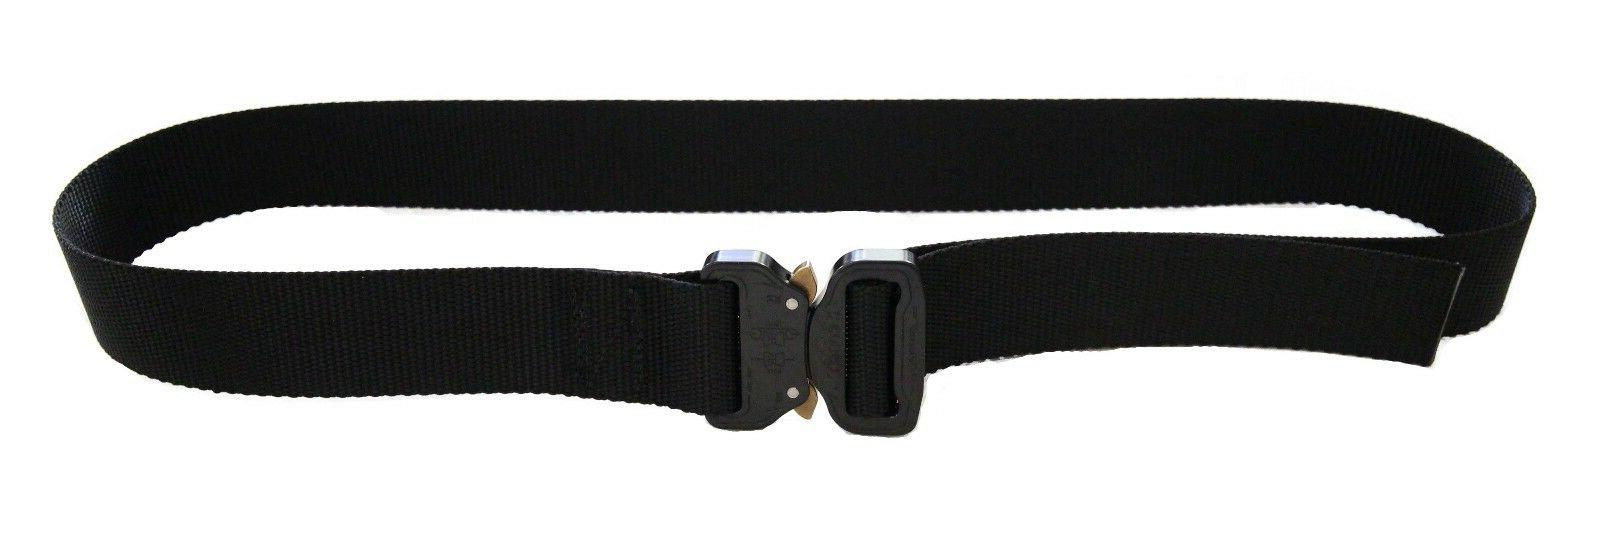 Hank's Surplus Heavy Duty Tactical Cobra Buckle Waist Belt 1